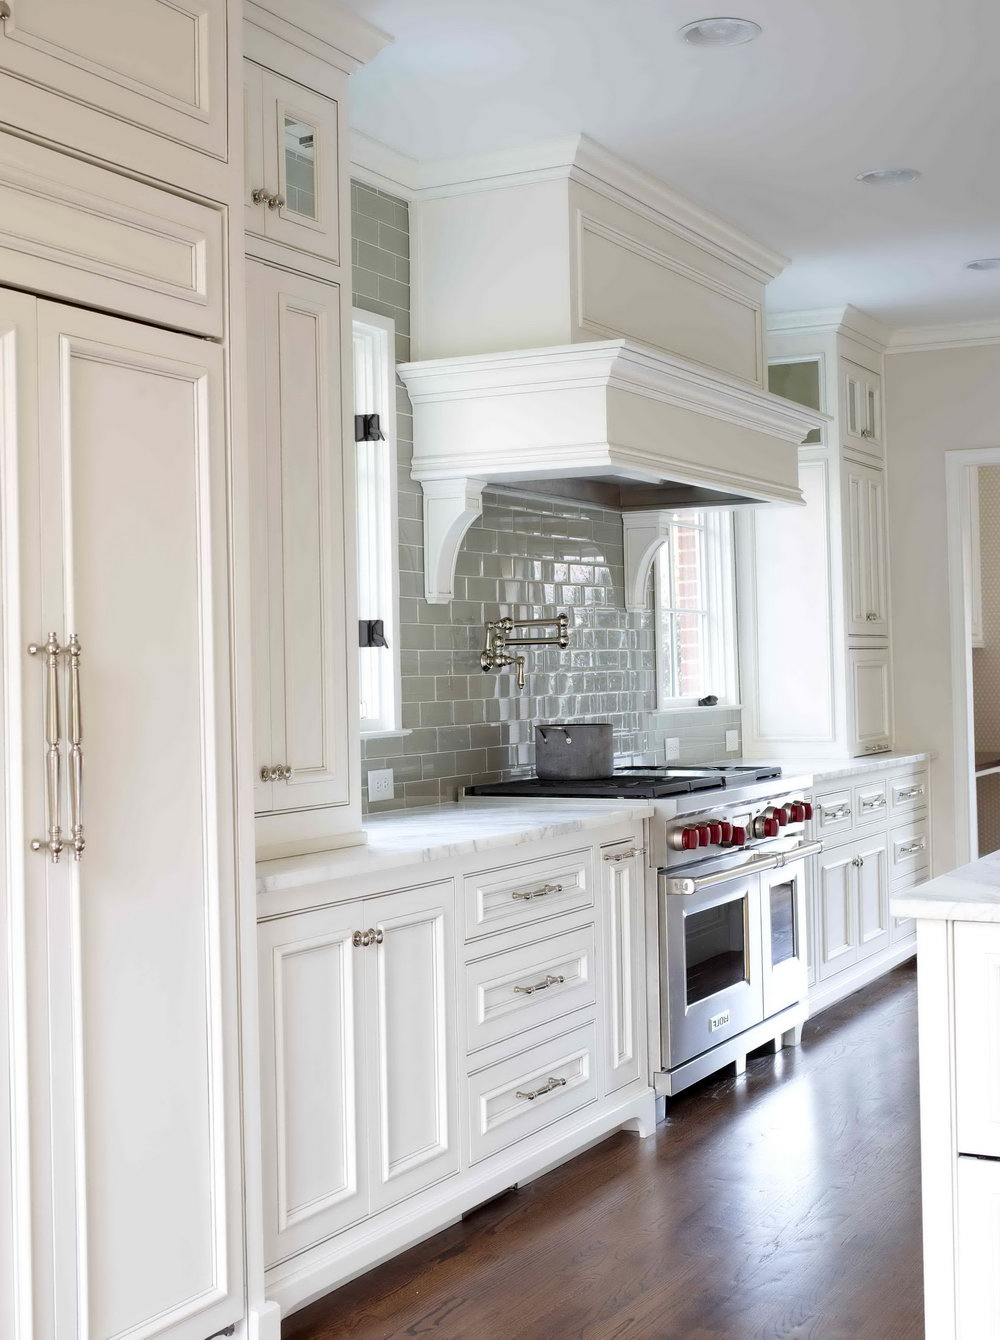 Images Of White Glazed Kitchen Cabinets